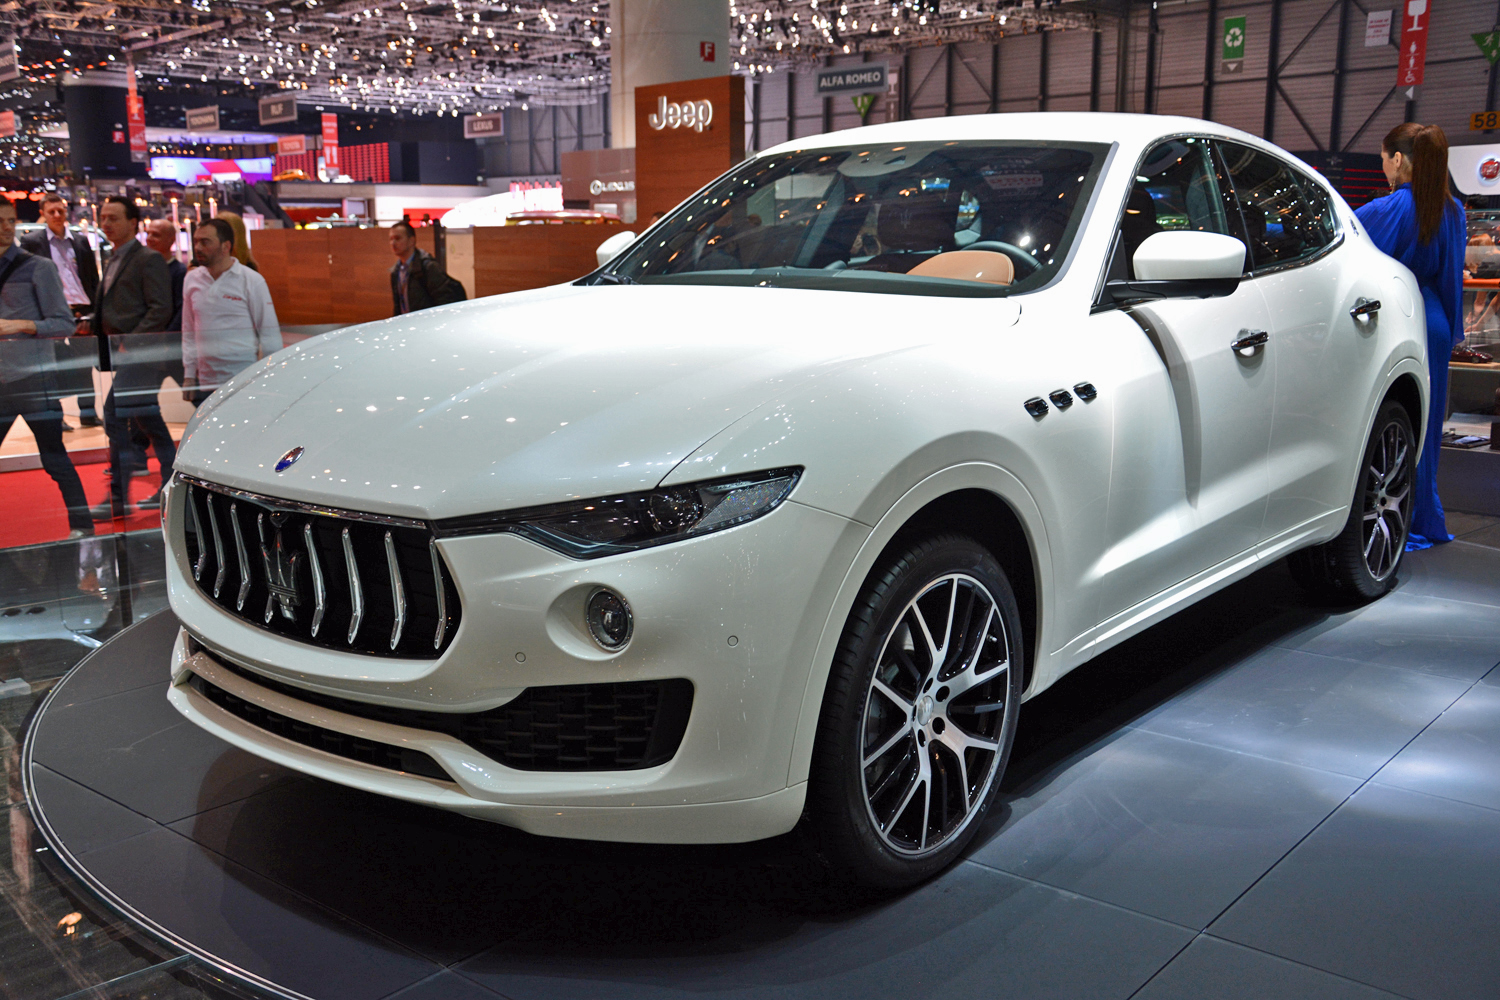 Could A V8 Powered Maserati Levante Topple The Porsche Cayenne Turbo